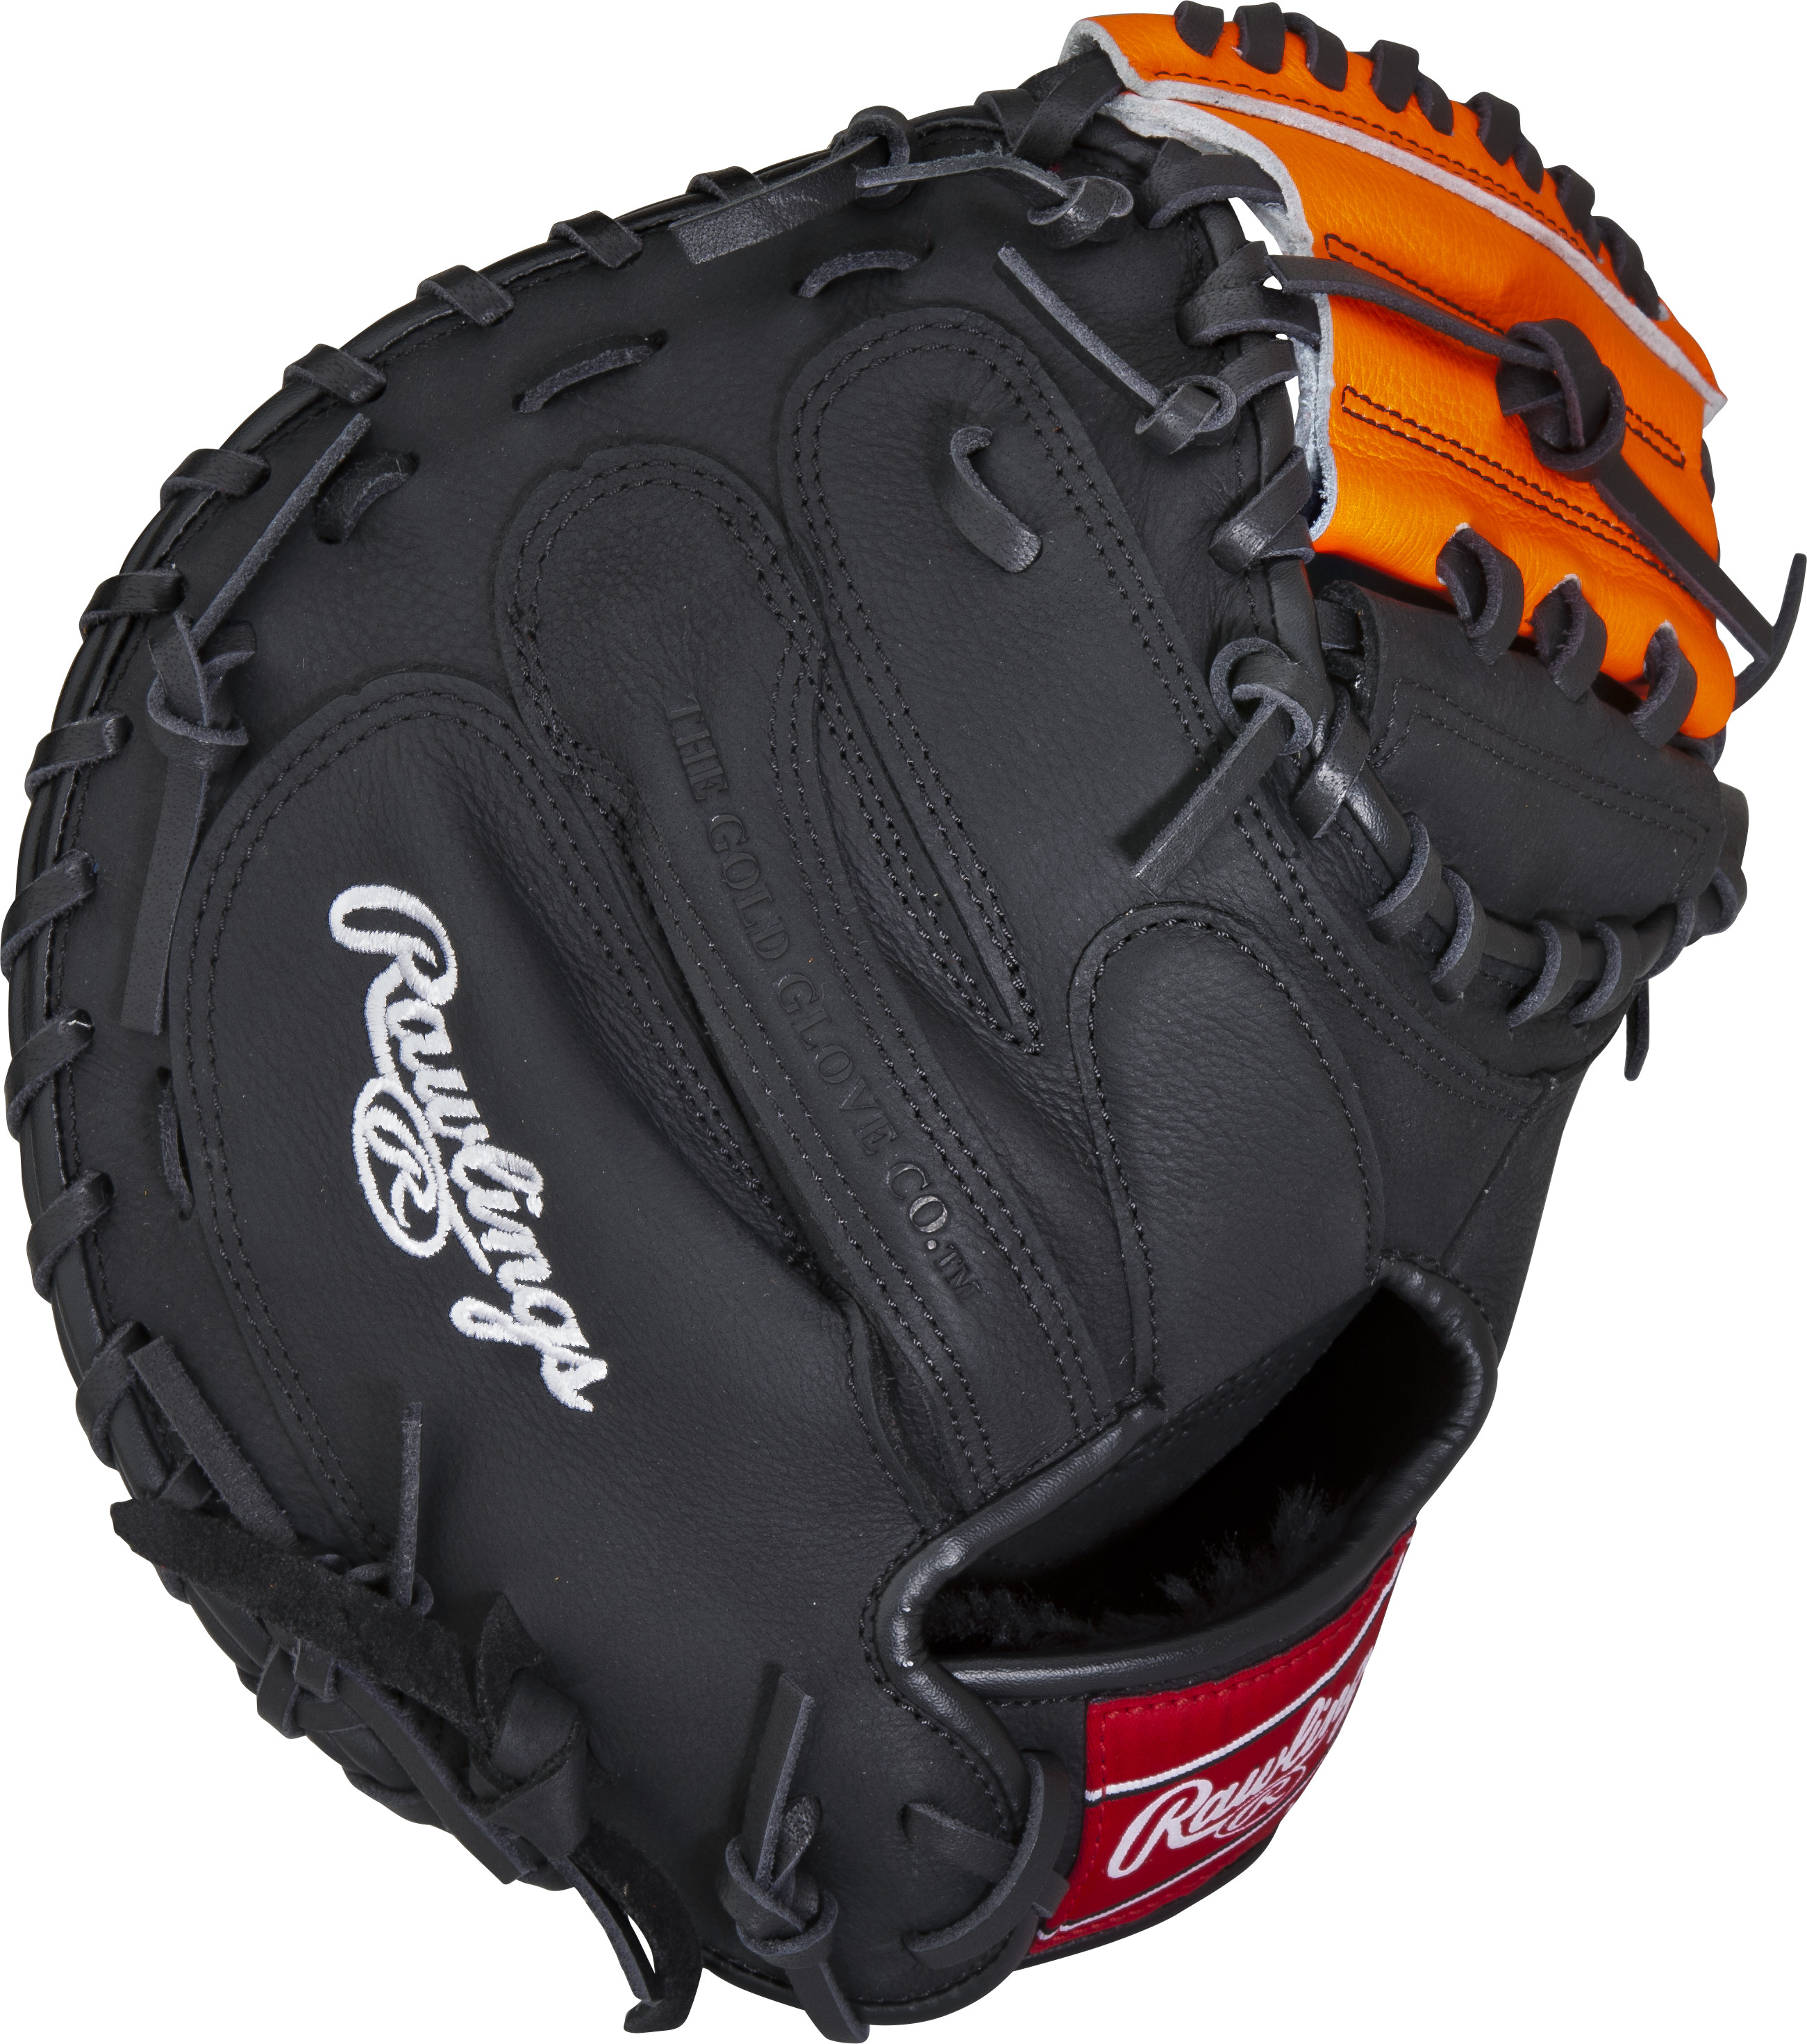 http://www.bestbatdeals.com/images/gloves/rawlings/PCM30T_back.jpg